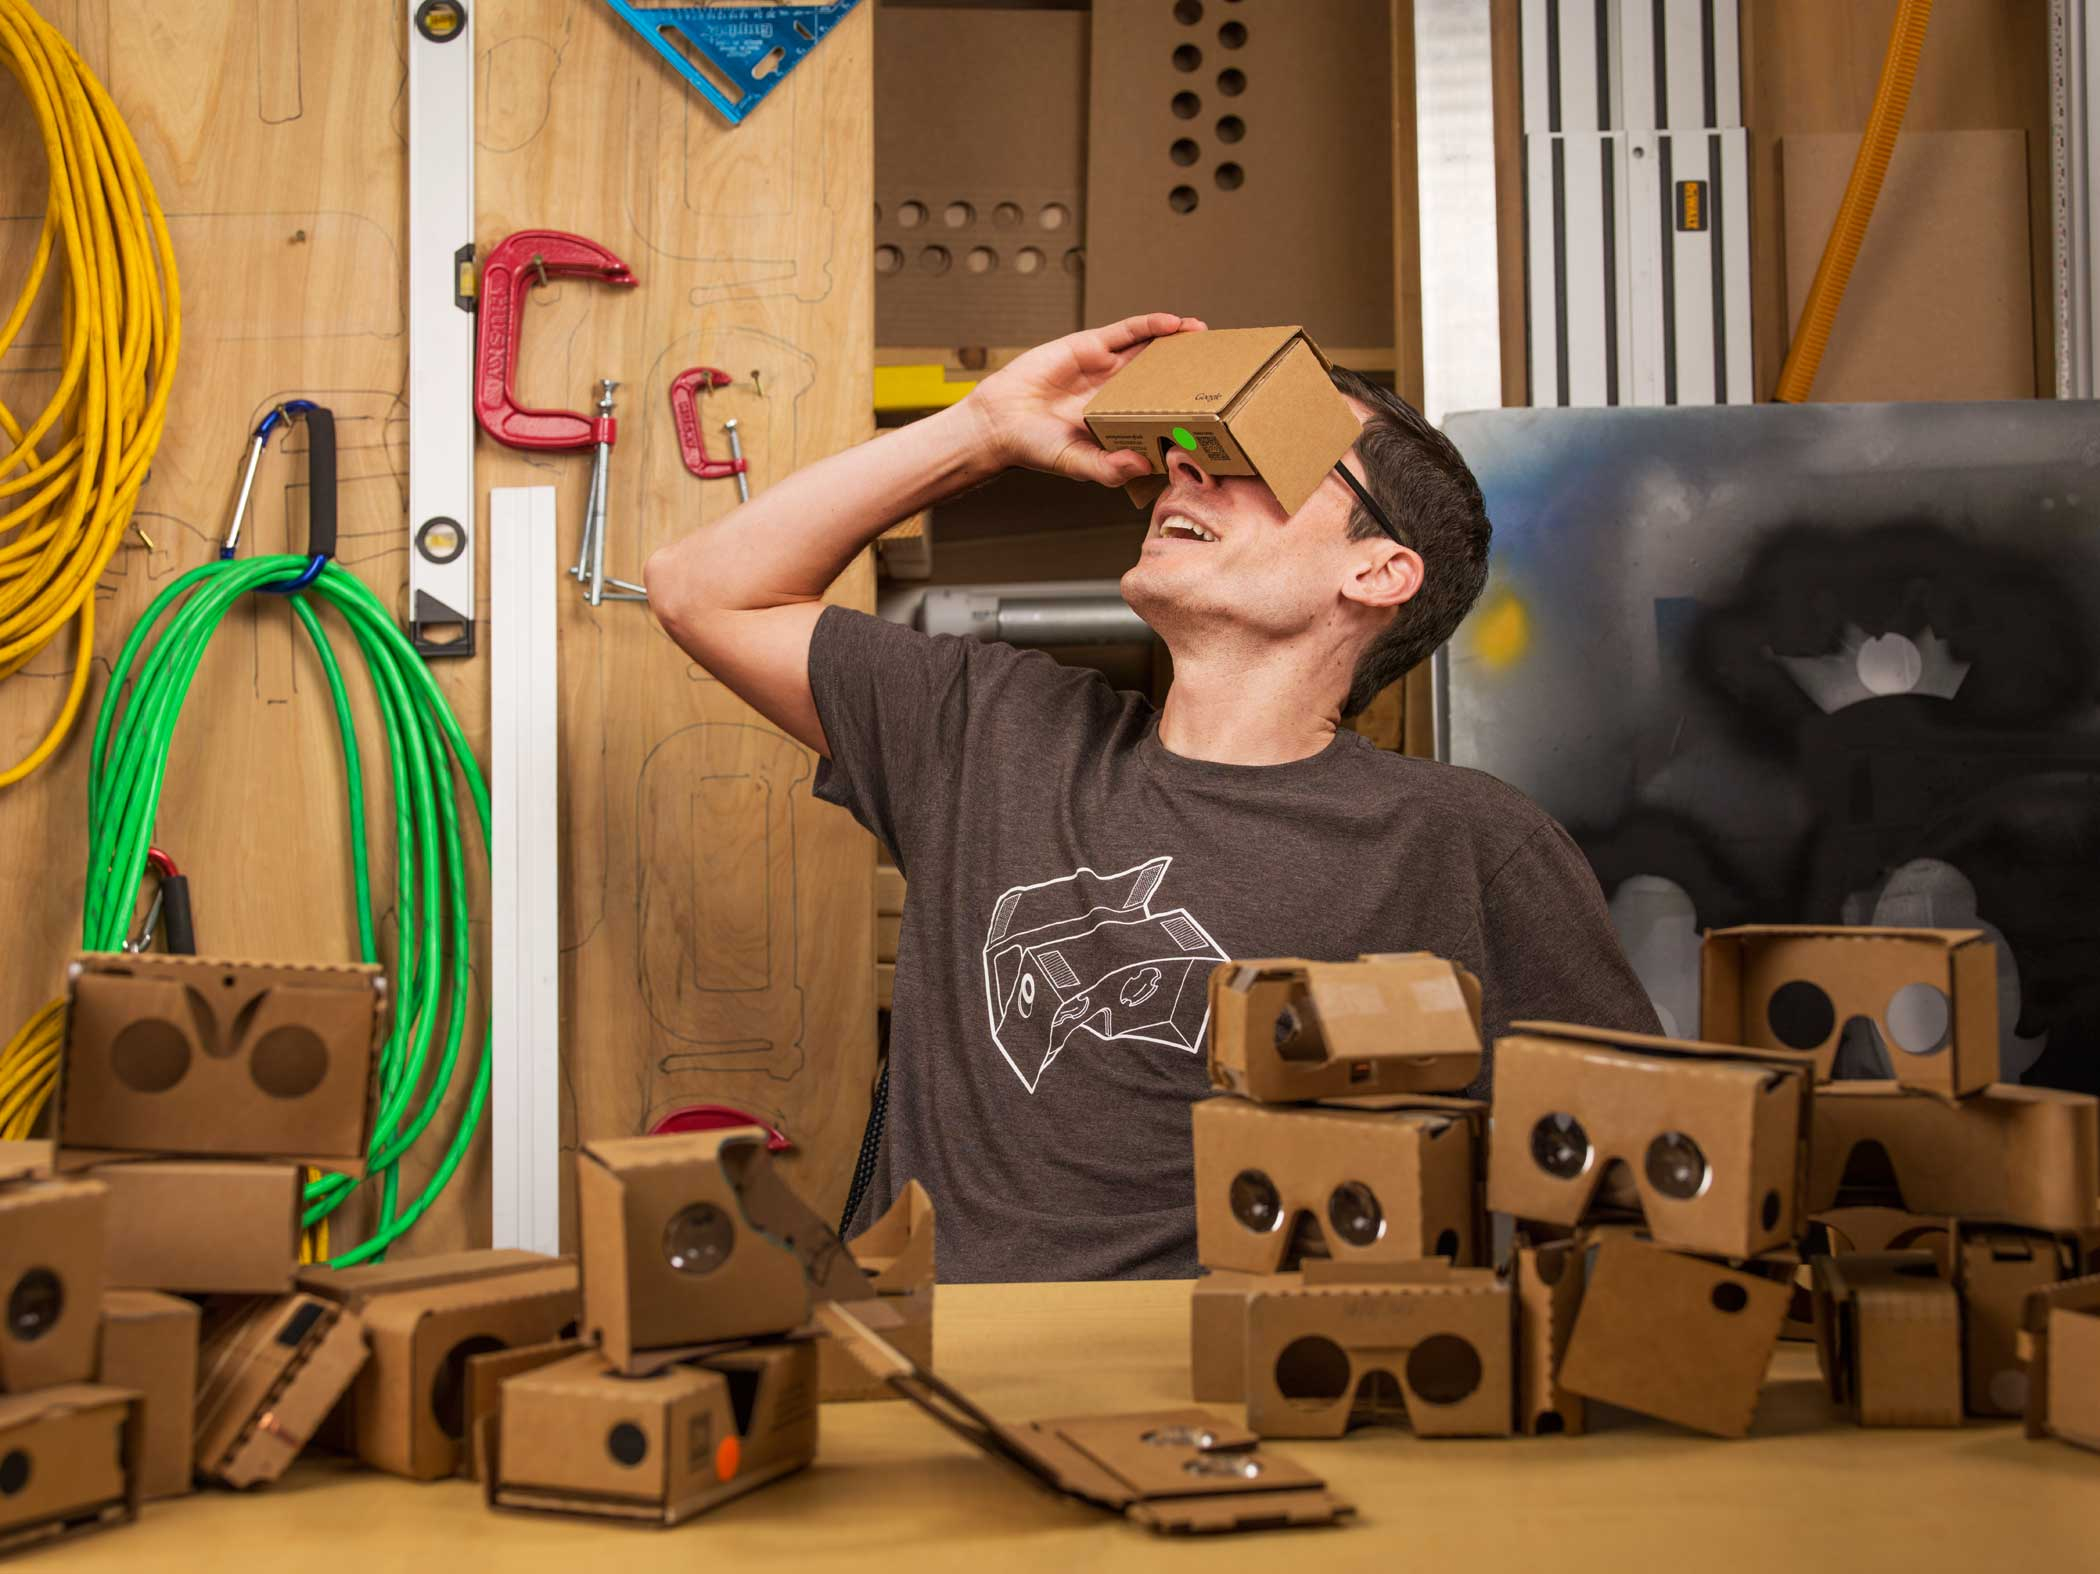 Clay Bavor, Vice President of Product Management at Google, wears a Google Cardboard headset at Google's headquarters in Mountain View, Calif. on June 24, 2015.